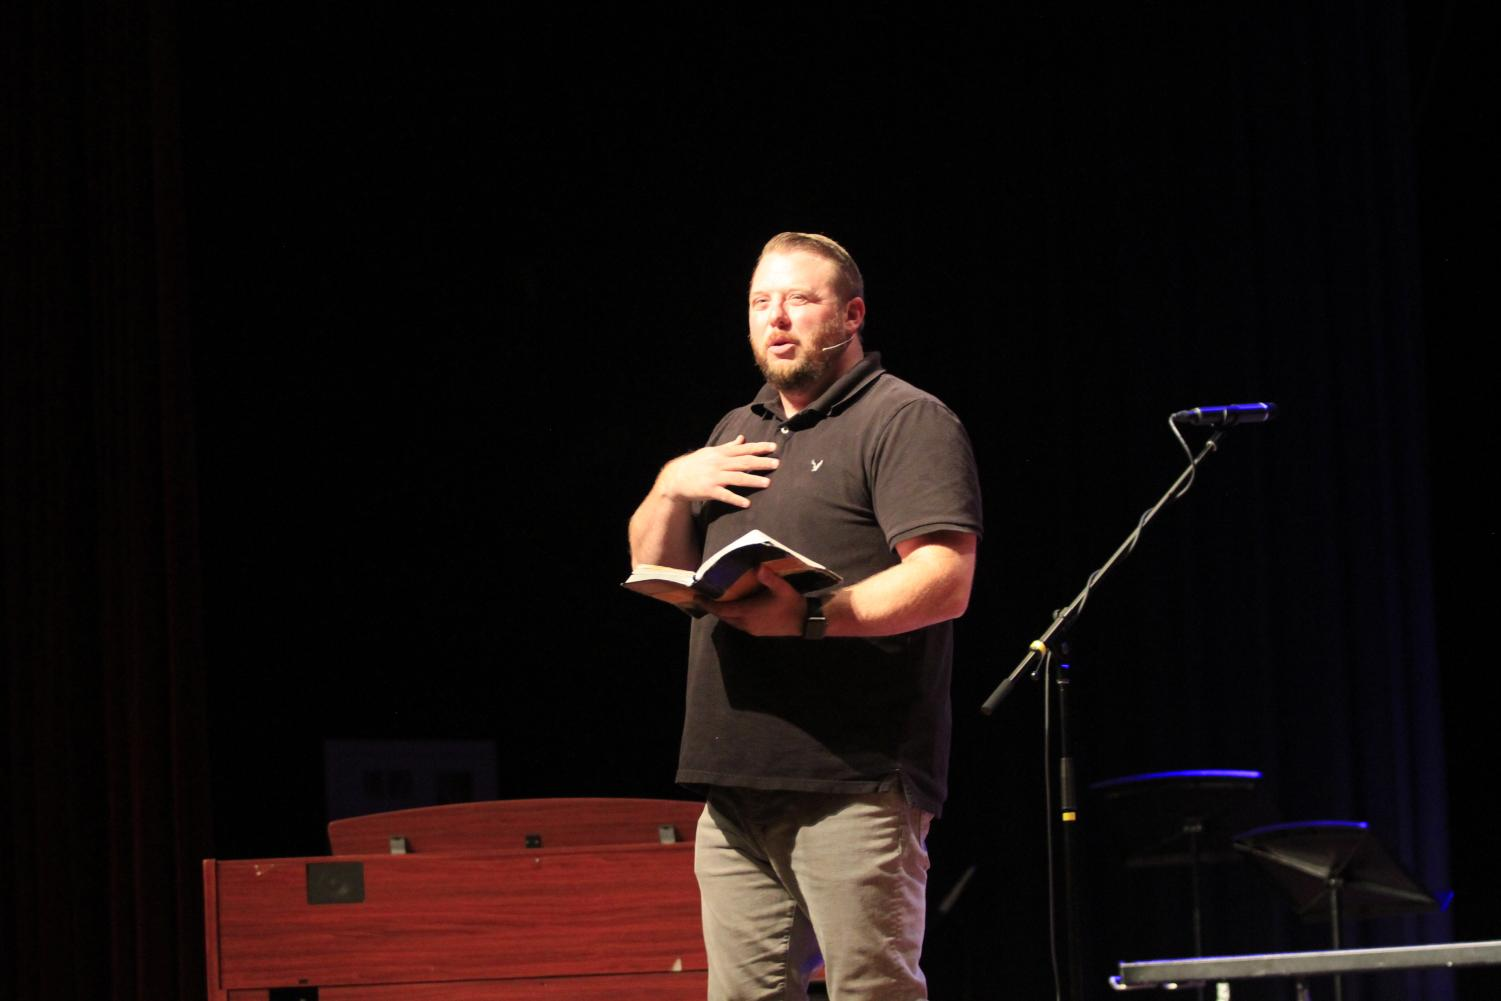 Scott Fergusson from Southland Christian Church   shares lessons from the life of Joseph.